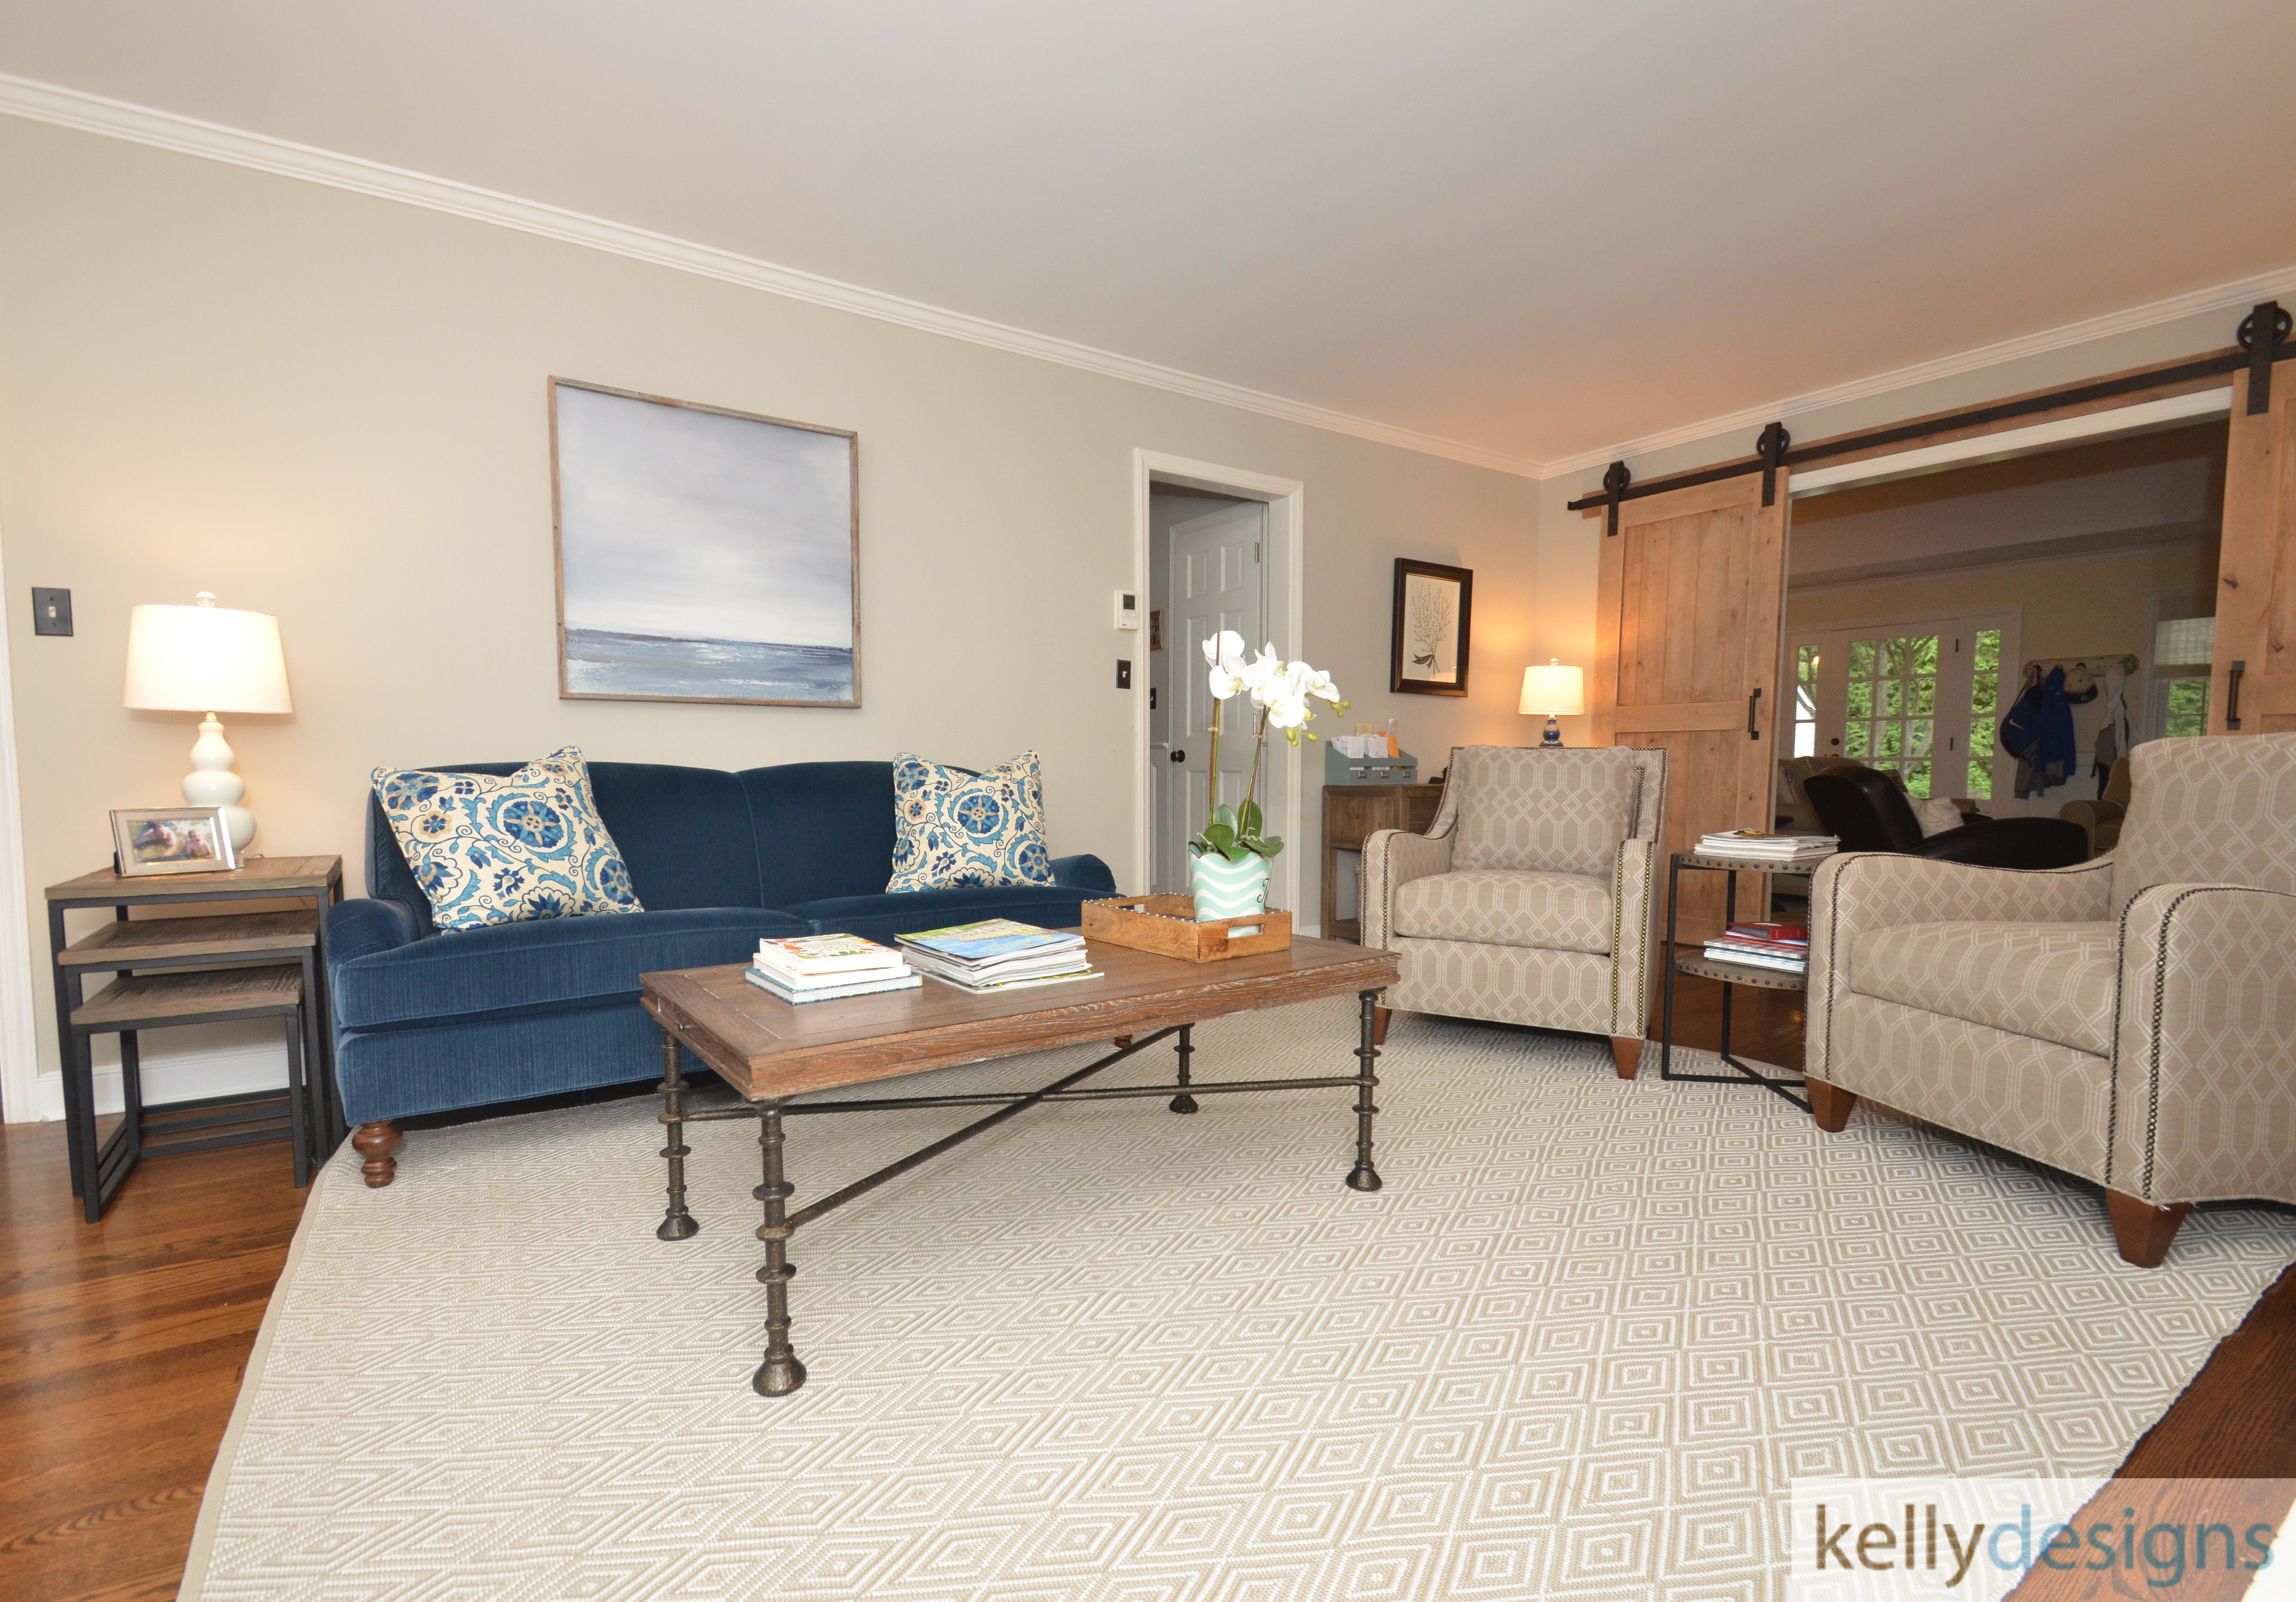 Simply Styled on Somerset - Living Room - Interior Design By kellydesigns